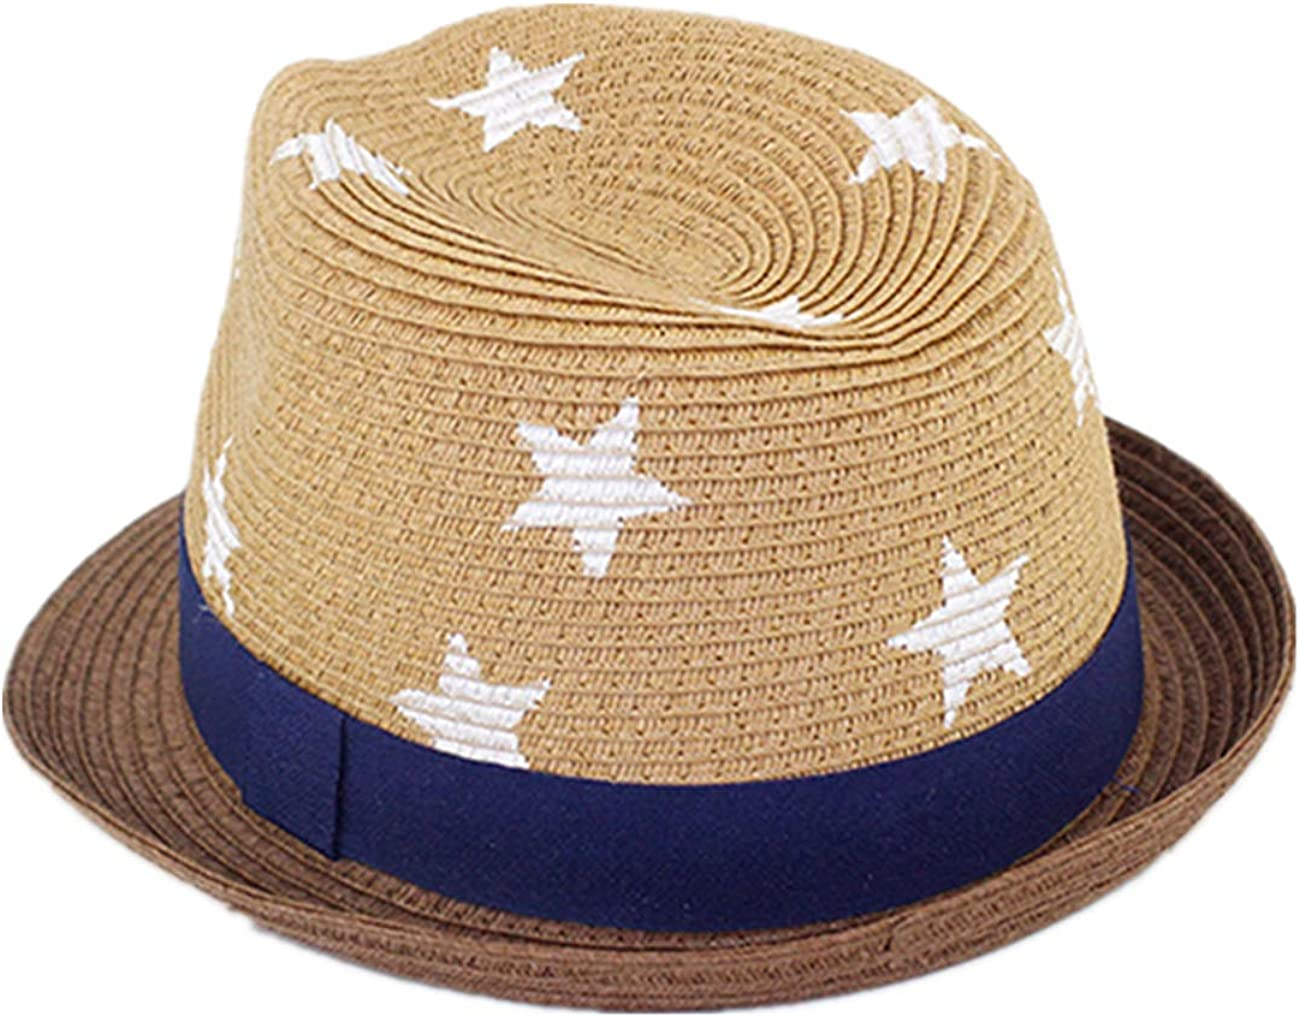 LLmoway Kids Summer Straw Hat for Baby Infant Toddler Boys Fedora Beach Sun Hat